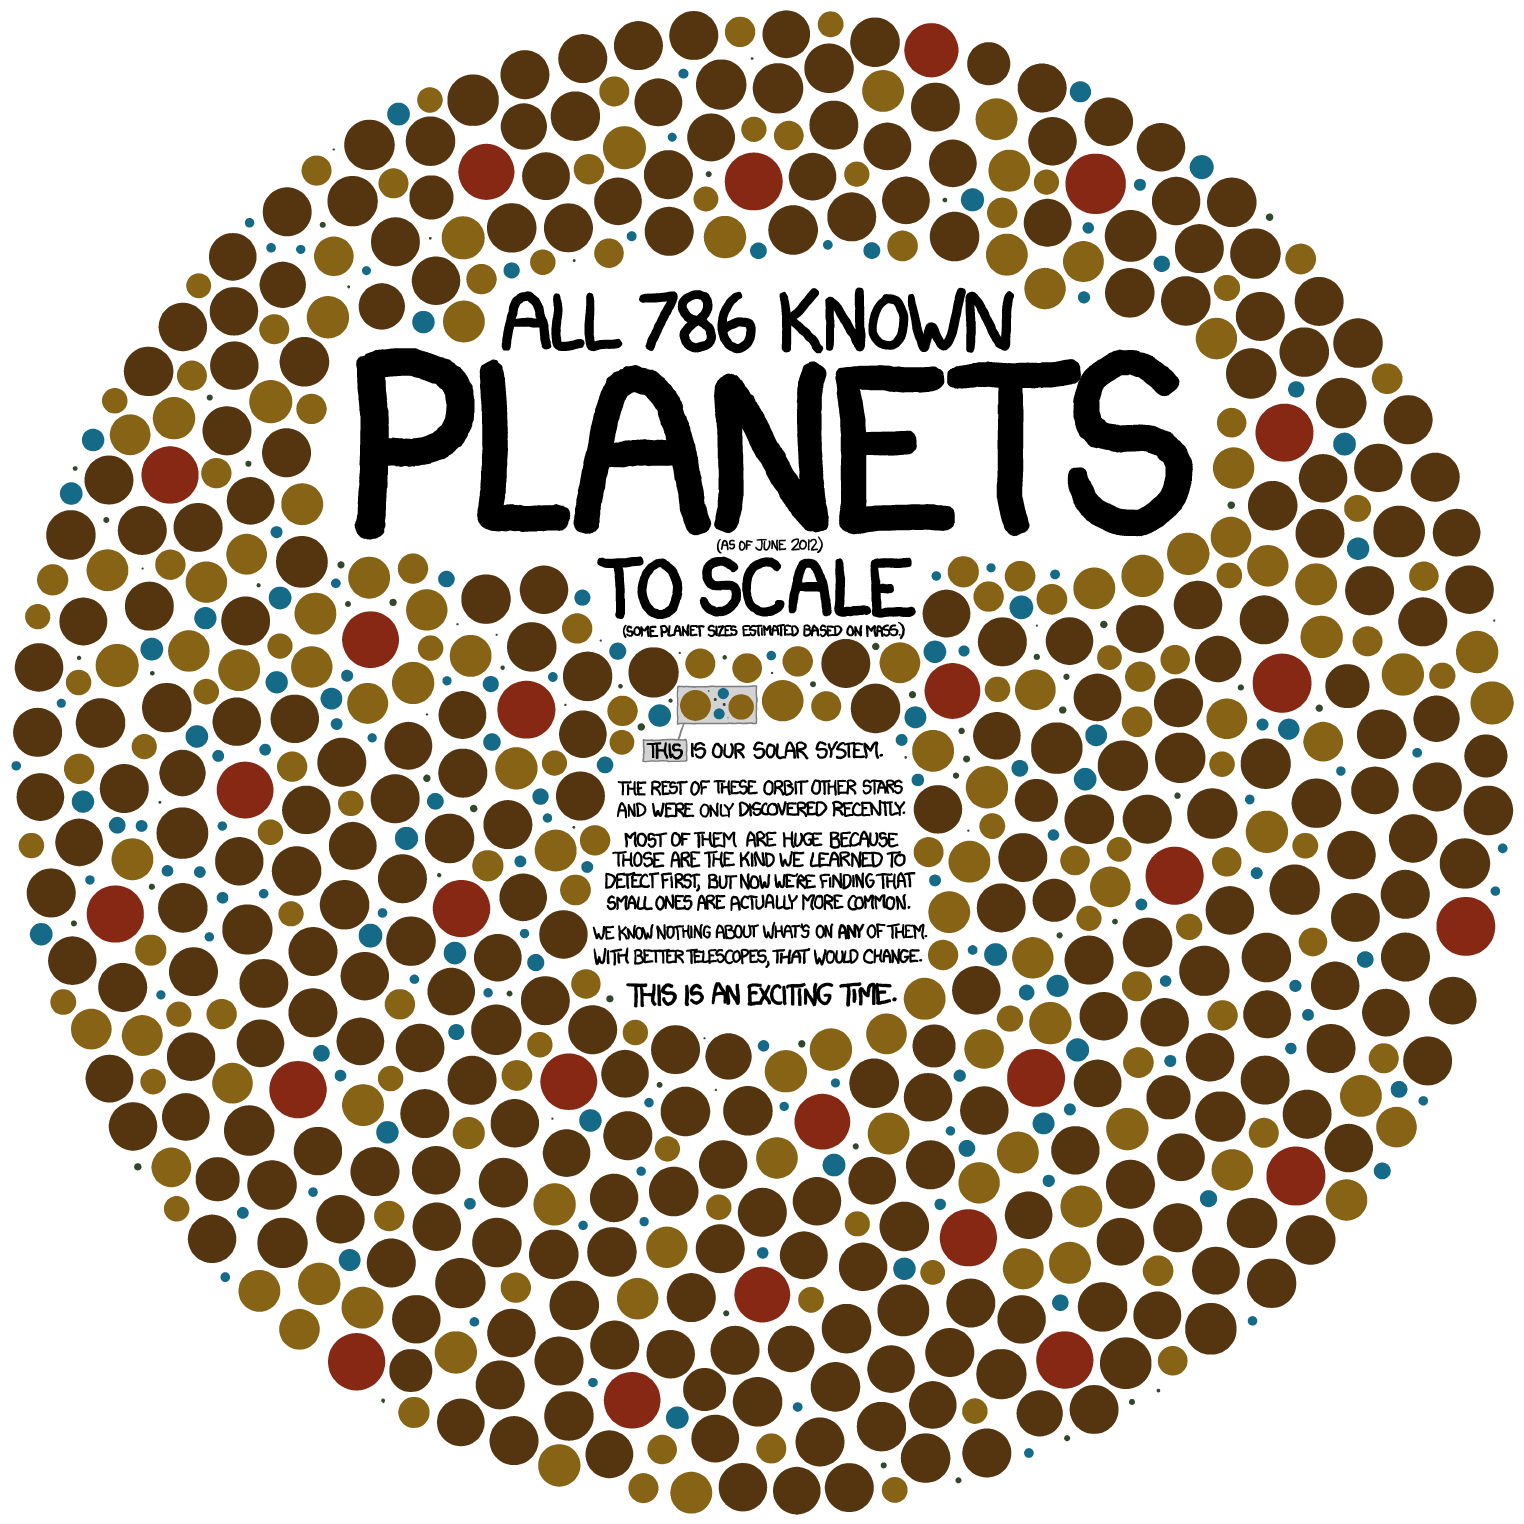 Exoplanets - xkcd